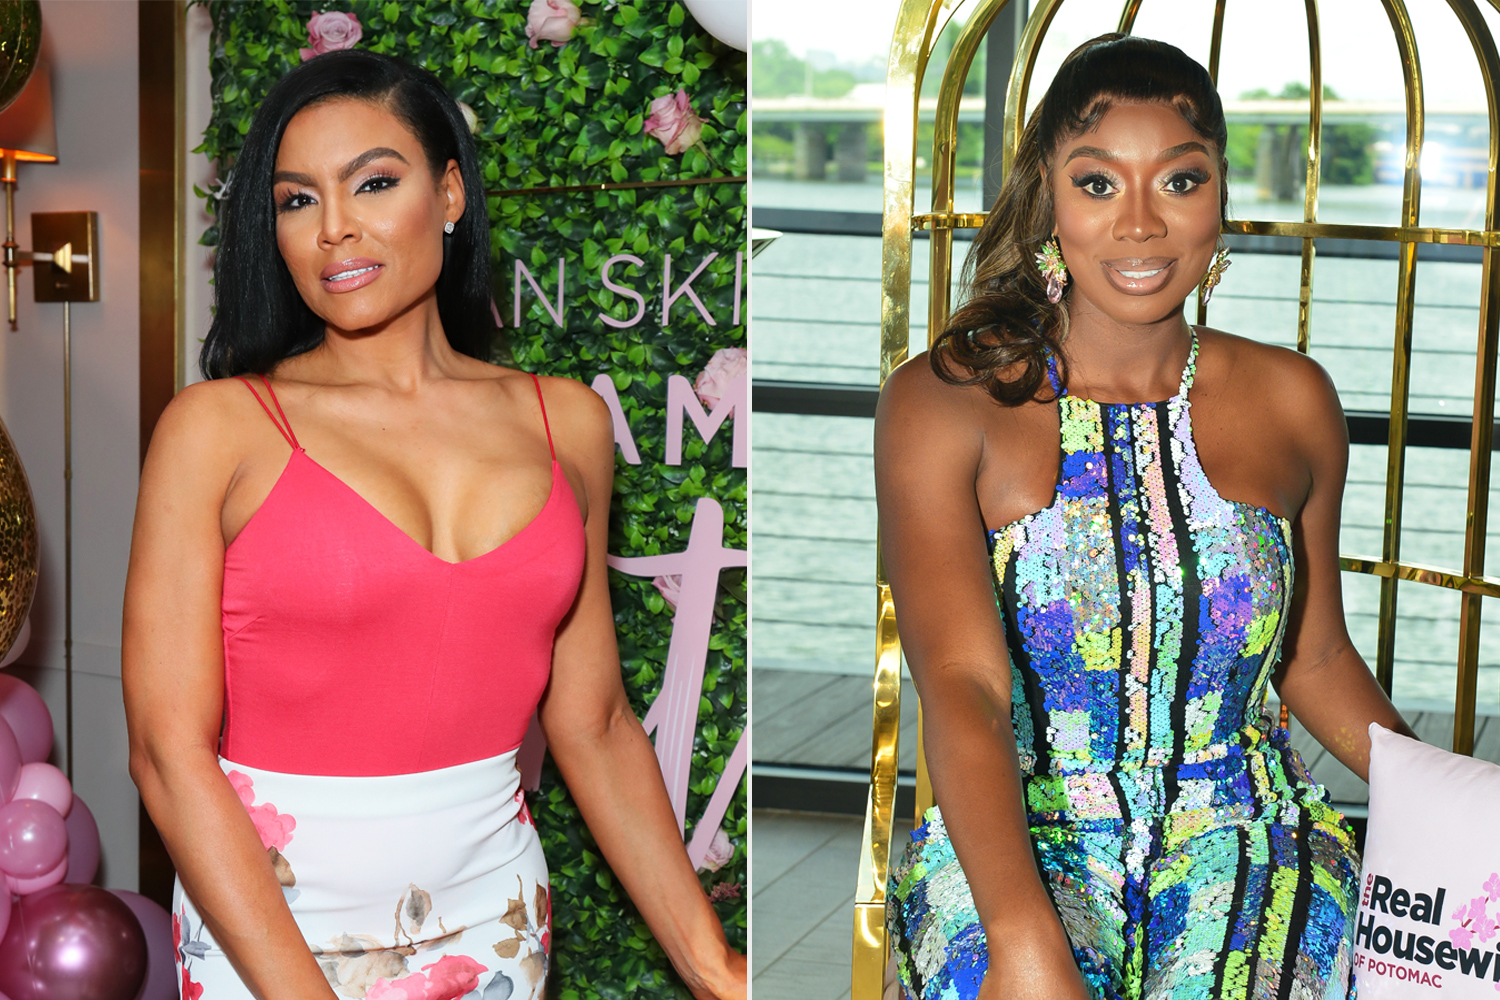 rhops-mia-thornton-said-karen-huger-encouraged-her-to-know-the-other-women-for-herself